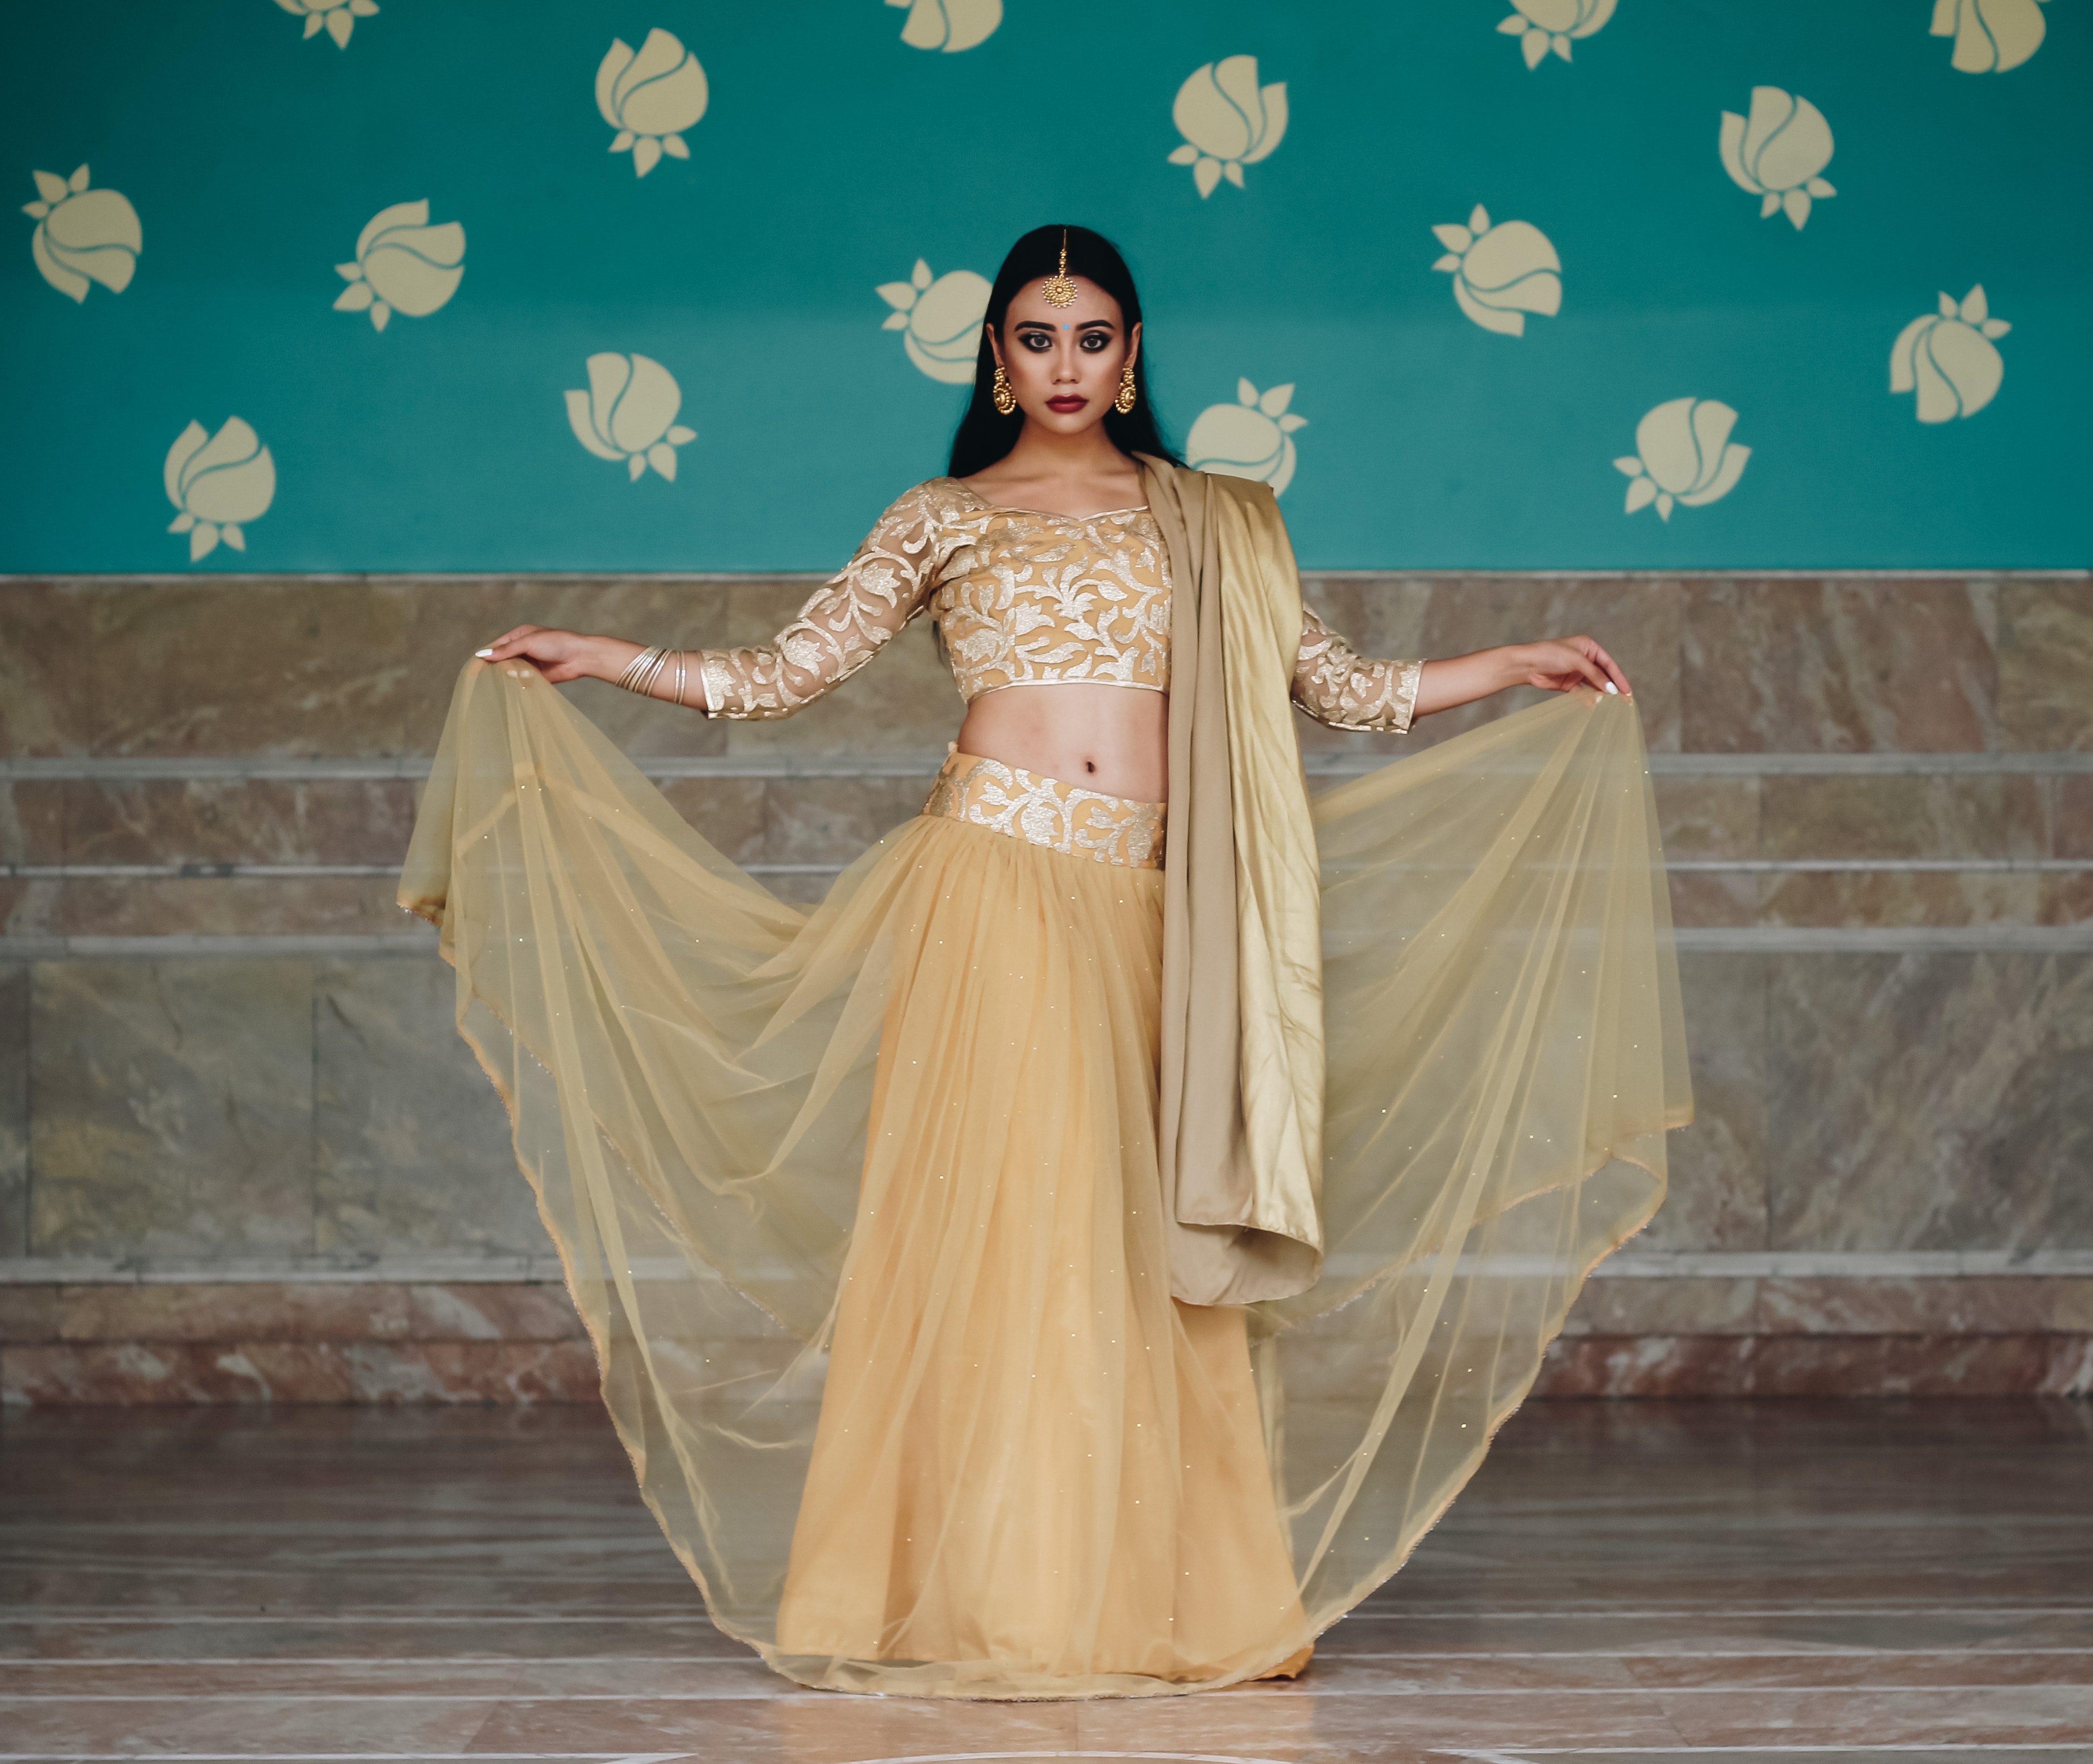 Indian Ethnic Wear Label Prerna Mehra Lehenga OOTD Fashion Style Desi Bridal